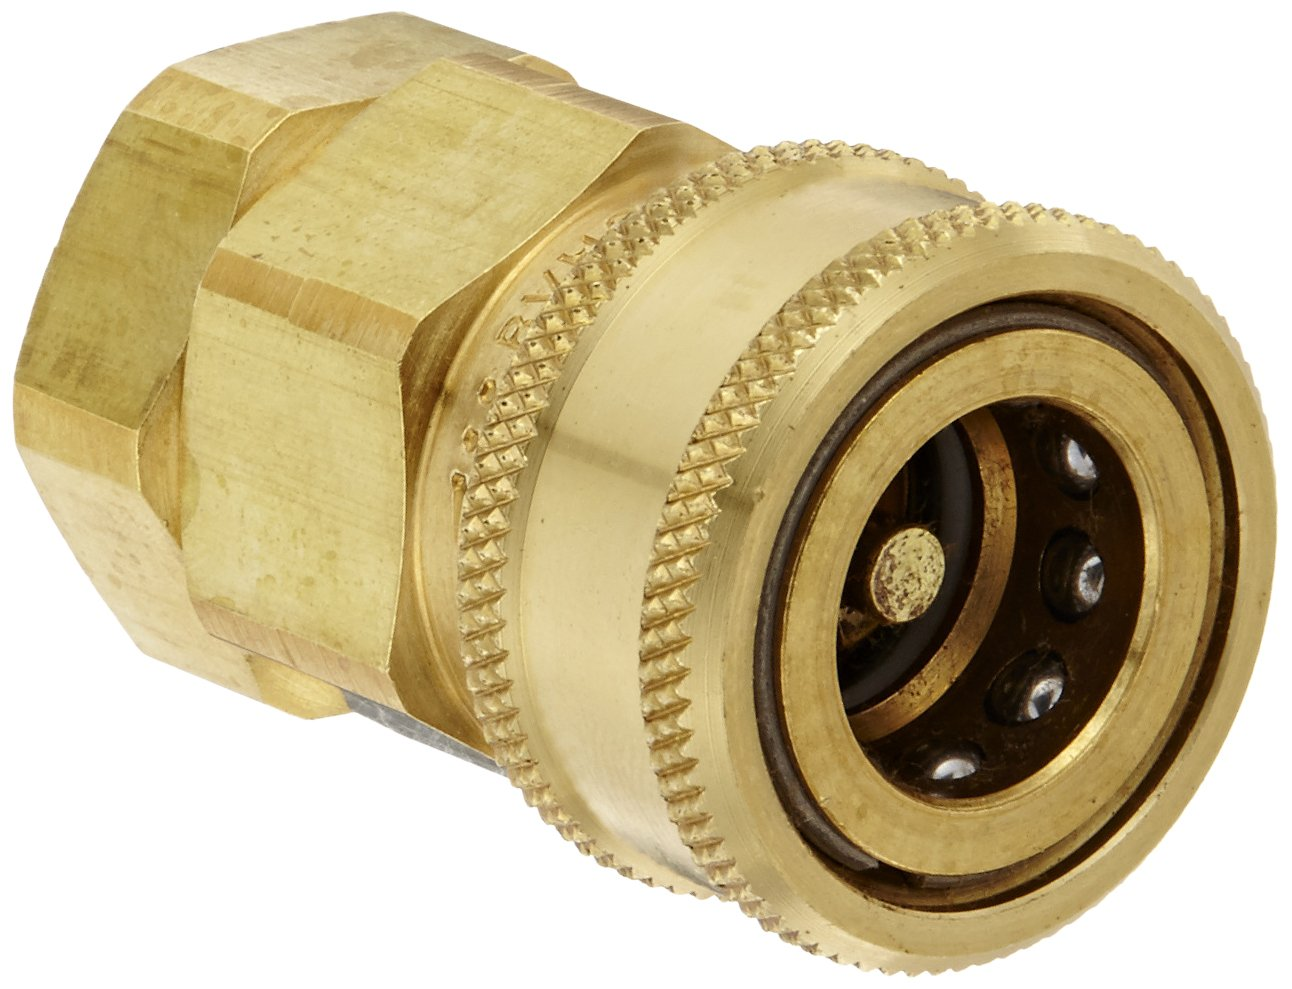 Snap-Tite BVHC8-8F Brass H-Shape Quick-Disconnect Hose Coupling, Sleeve-Lock Socket, 1/2'' NPTF Female x 1/2'' Coupling Size